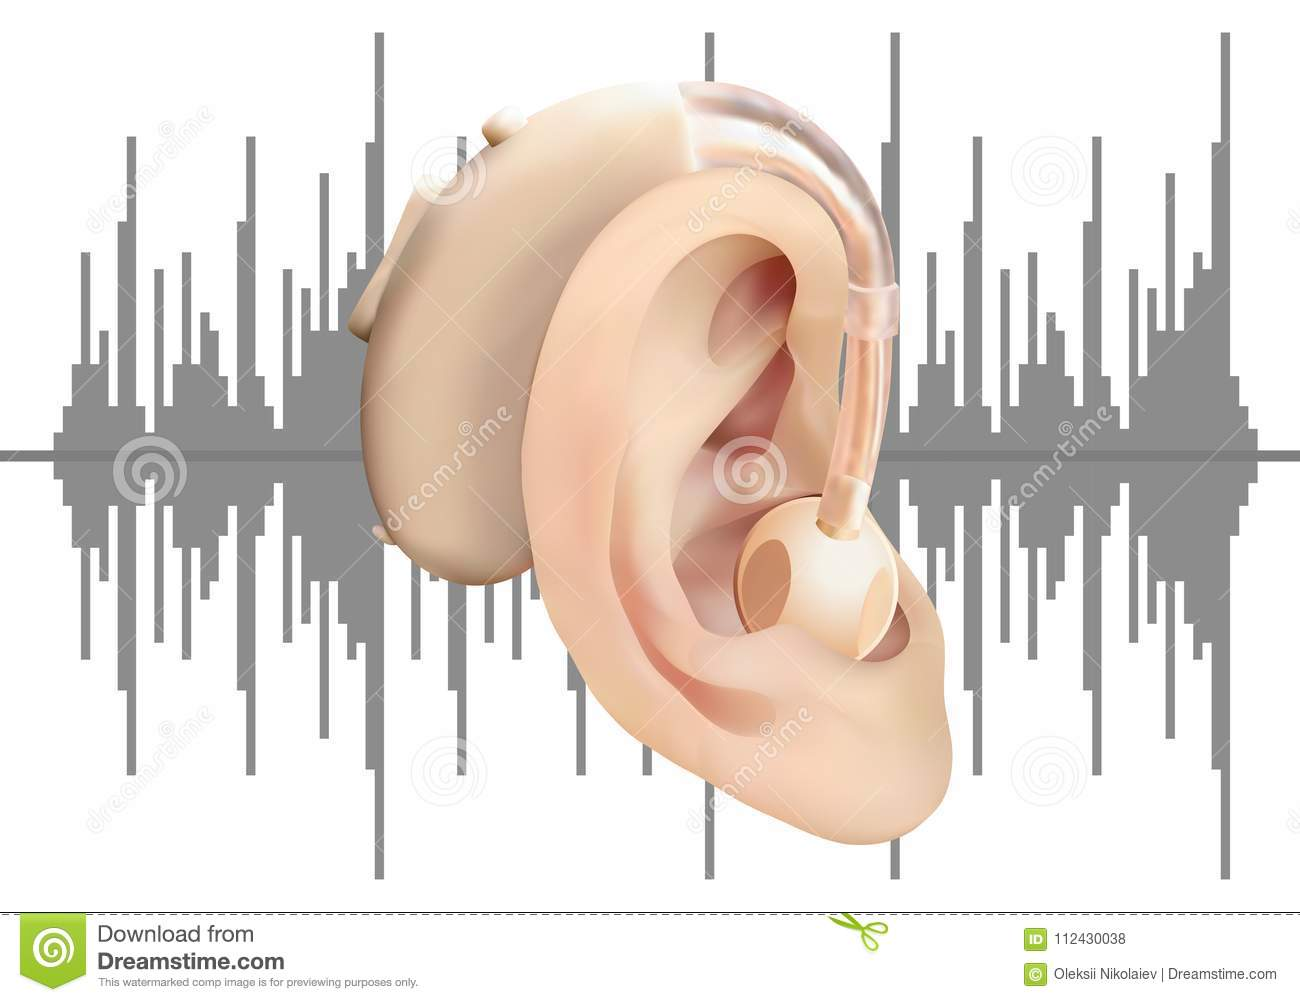 hight resolution of digital hearing aid behind the ear on the background of sound wave diagram treatment